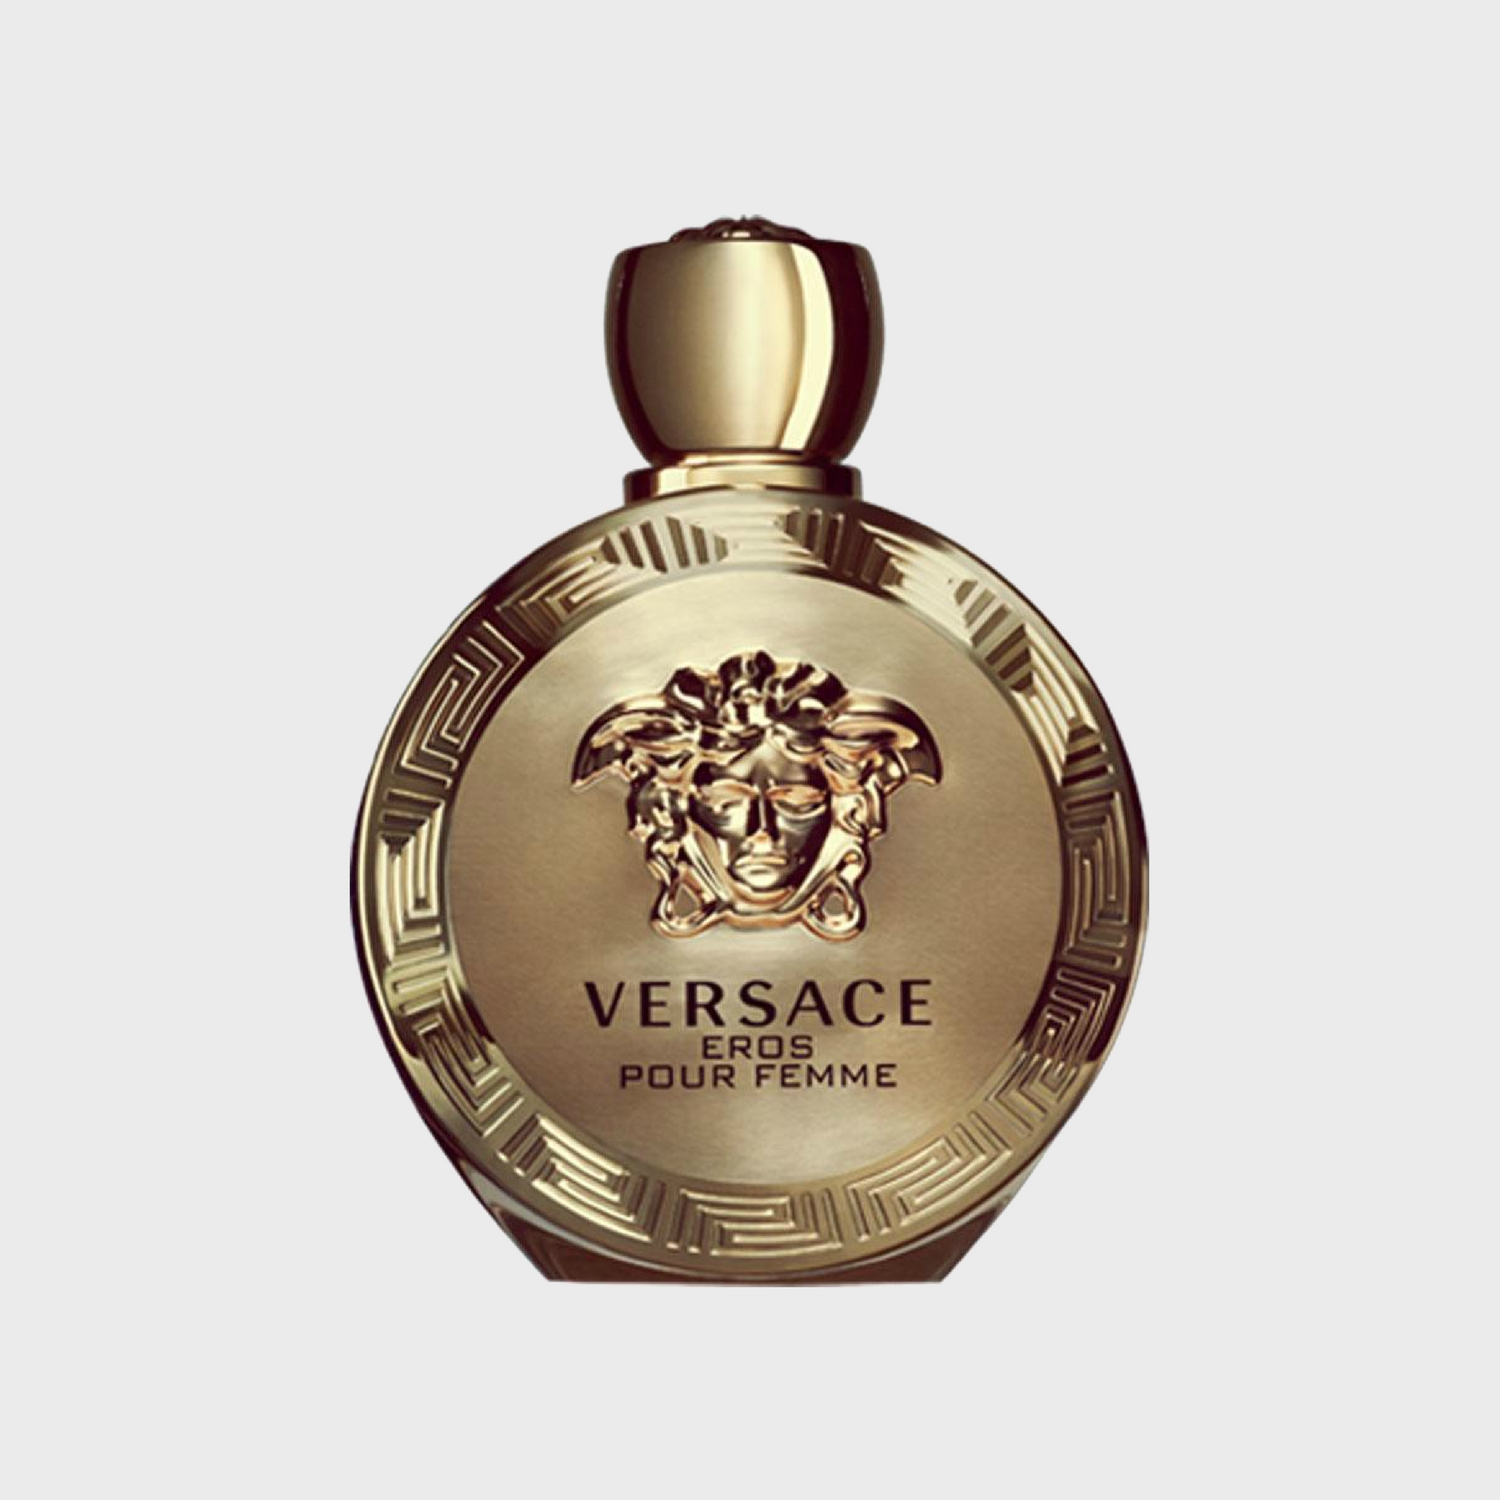 Versace Eros pour femme - Women's Fragrance Reviews